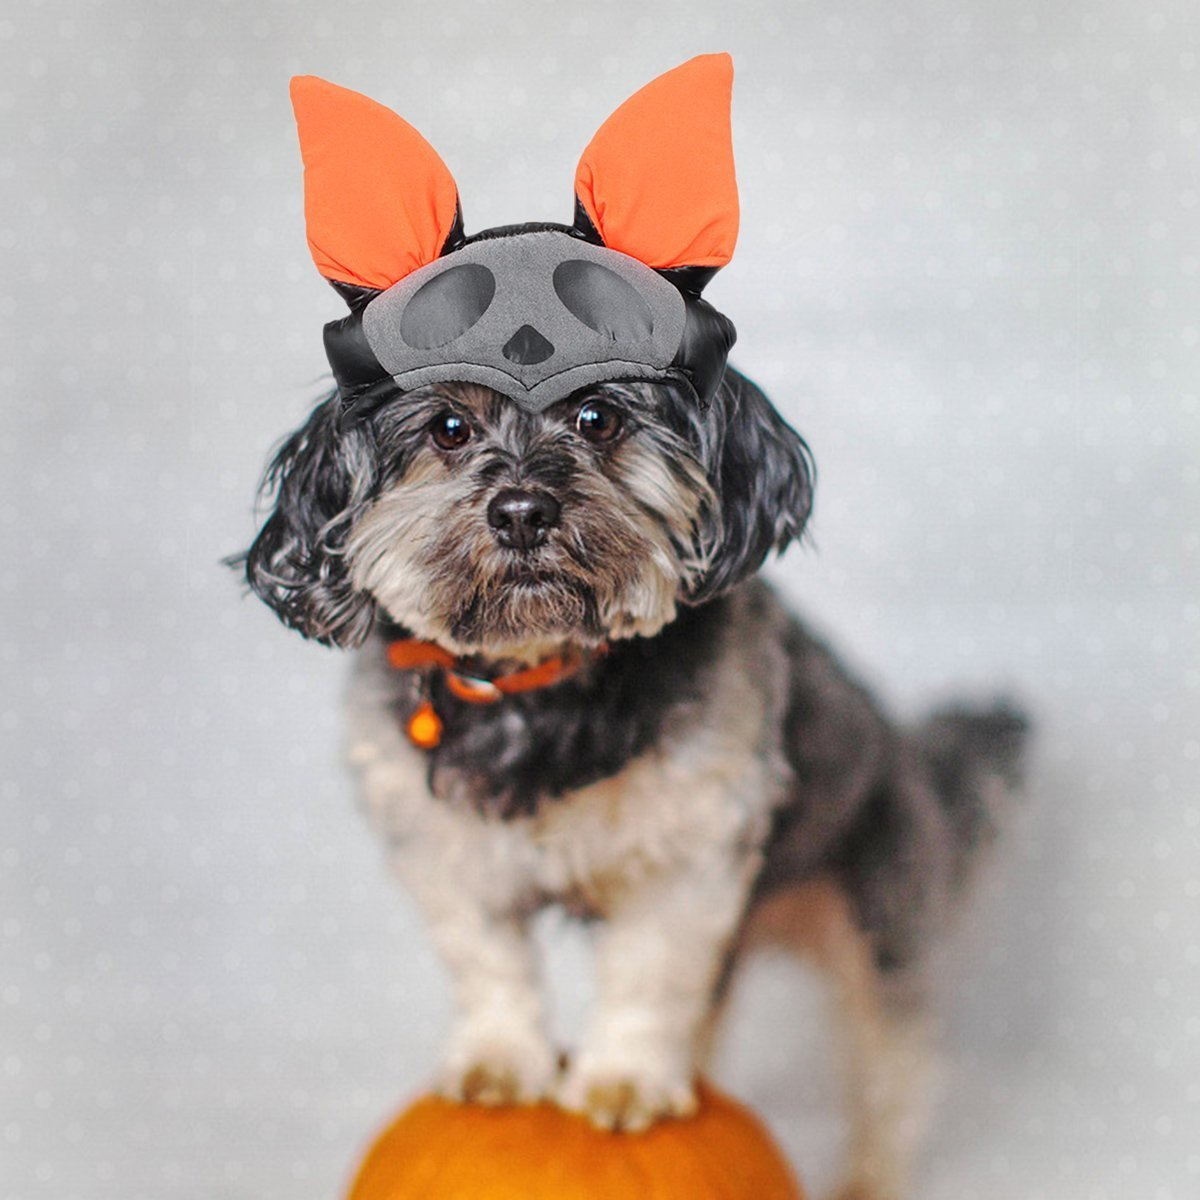 PETLESO Dog Cat Costume Bat Pumpkin Hat for Cats for Small Dogs Holiday xmas & PETLESO Dog Cat Costume Bat Pumpkin Hat for Cats for Small Dogs ...